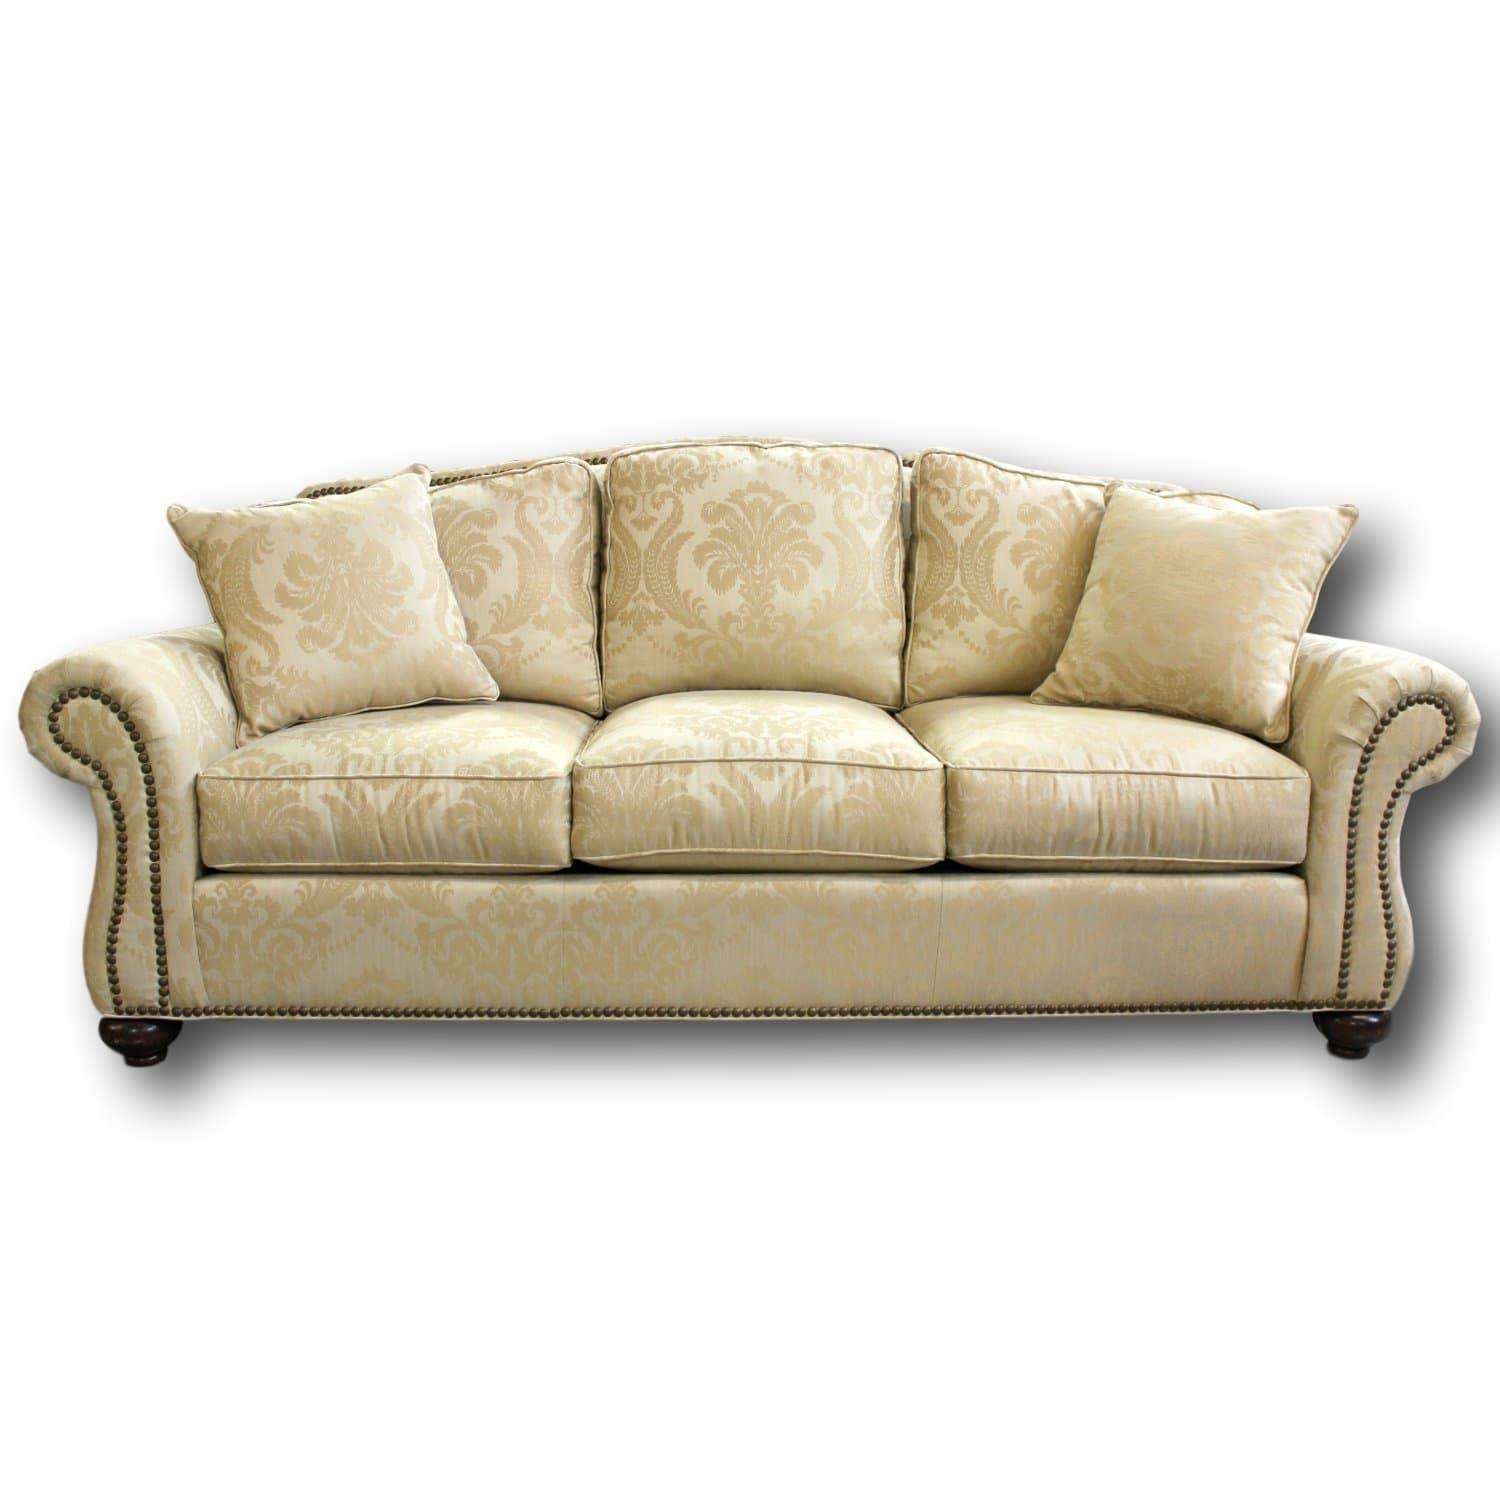 20 Best Collection Of Alan White Couches | Sofa Ideas within Alan White Couches (Image 11 of 15)